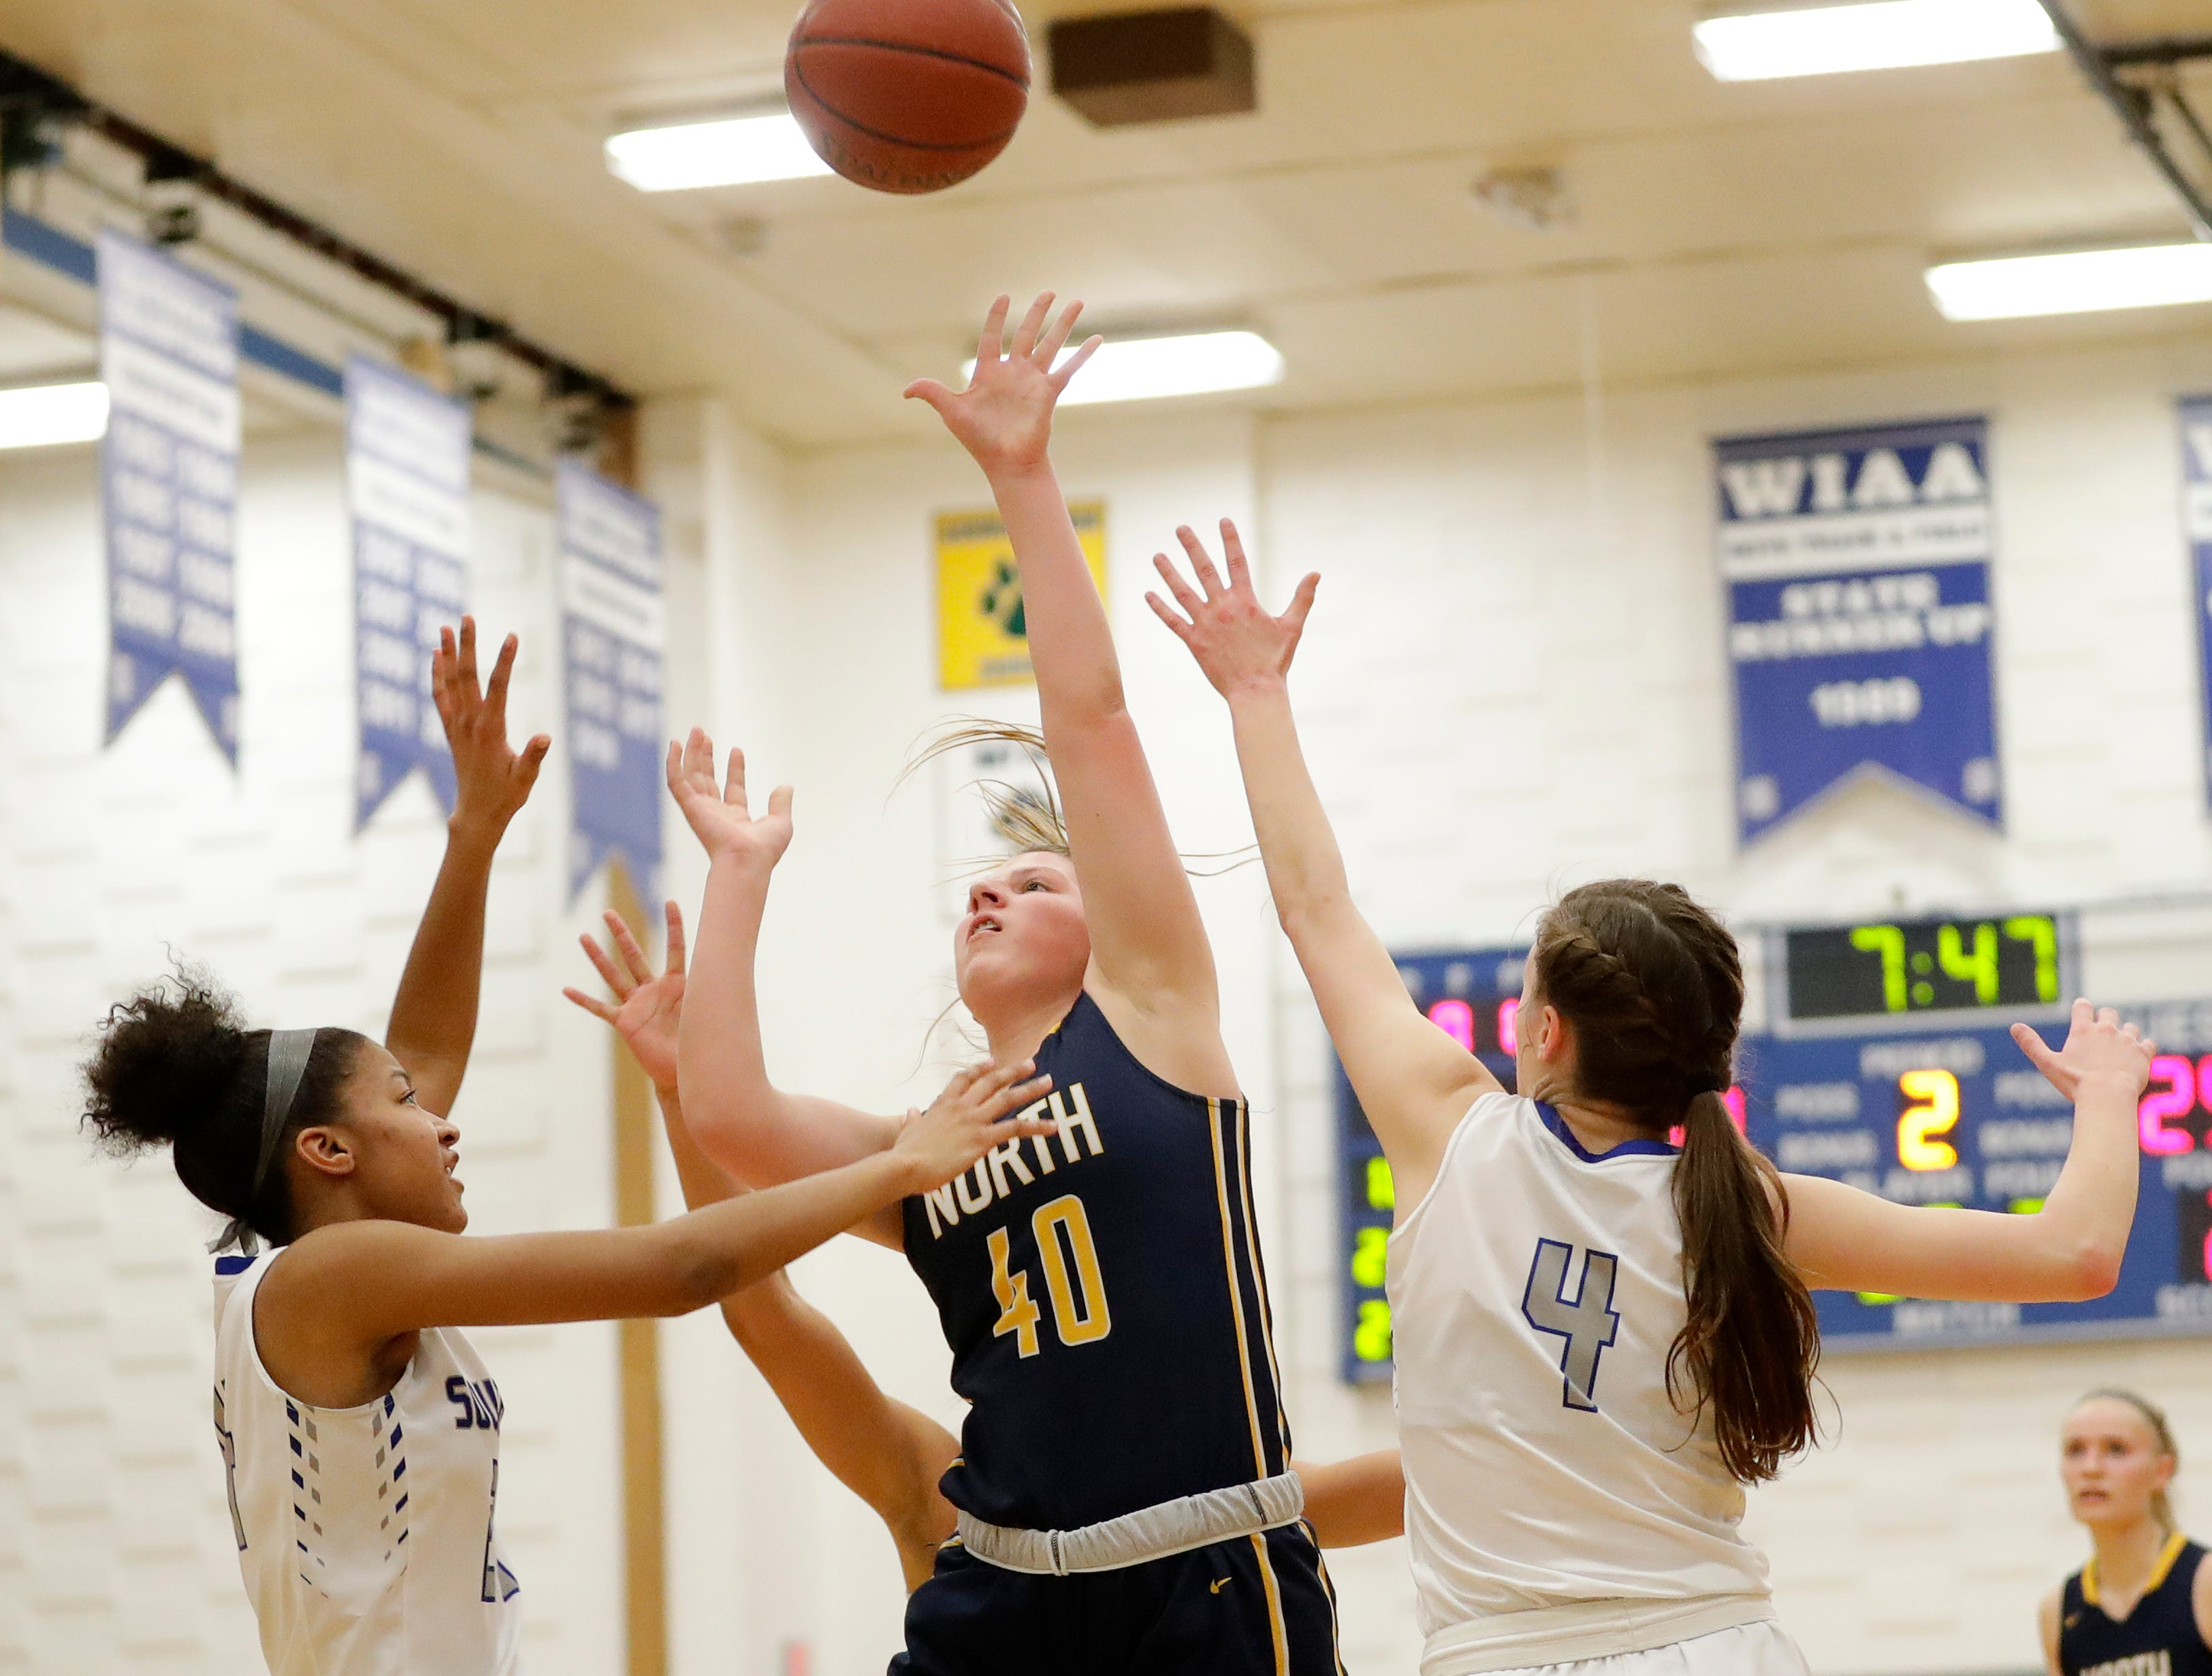 Sheboygan North's Macy Schetter (40) shoots against Green Bay Southwest in a girls basketball game at Southwest High School on Tuesday, February 5, 2019 in Green Bay, Wis.